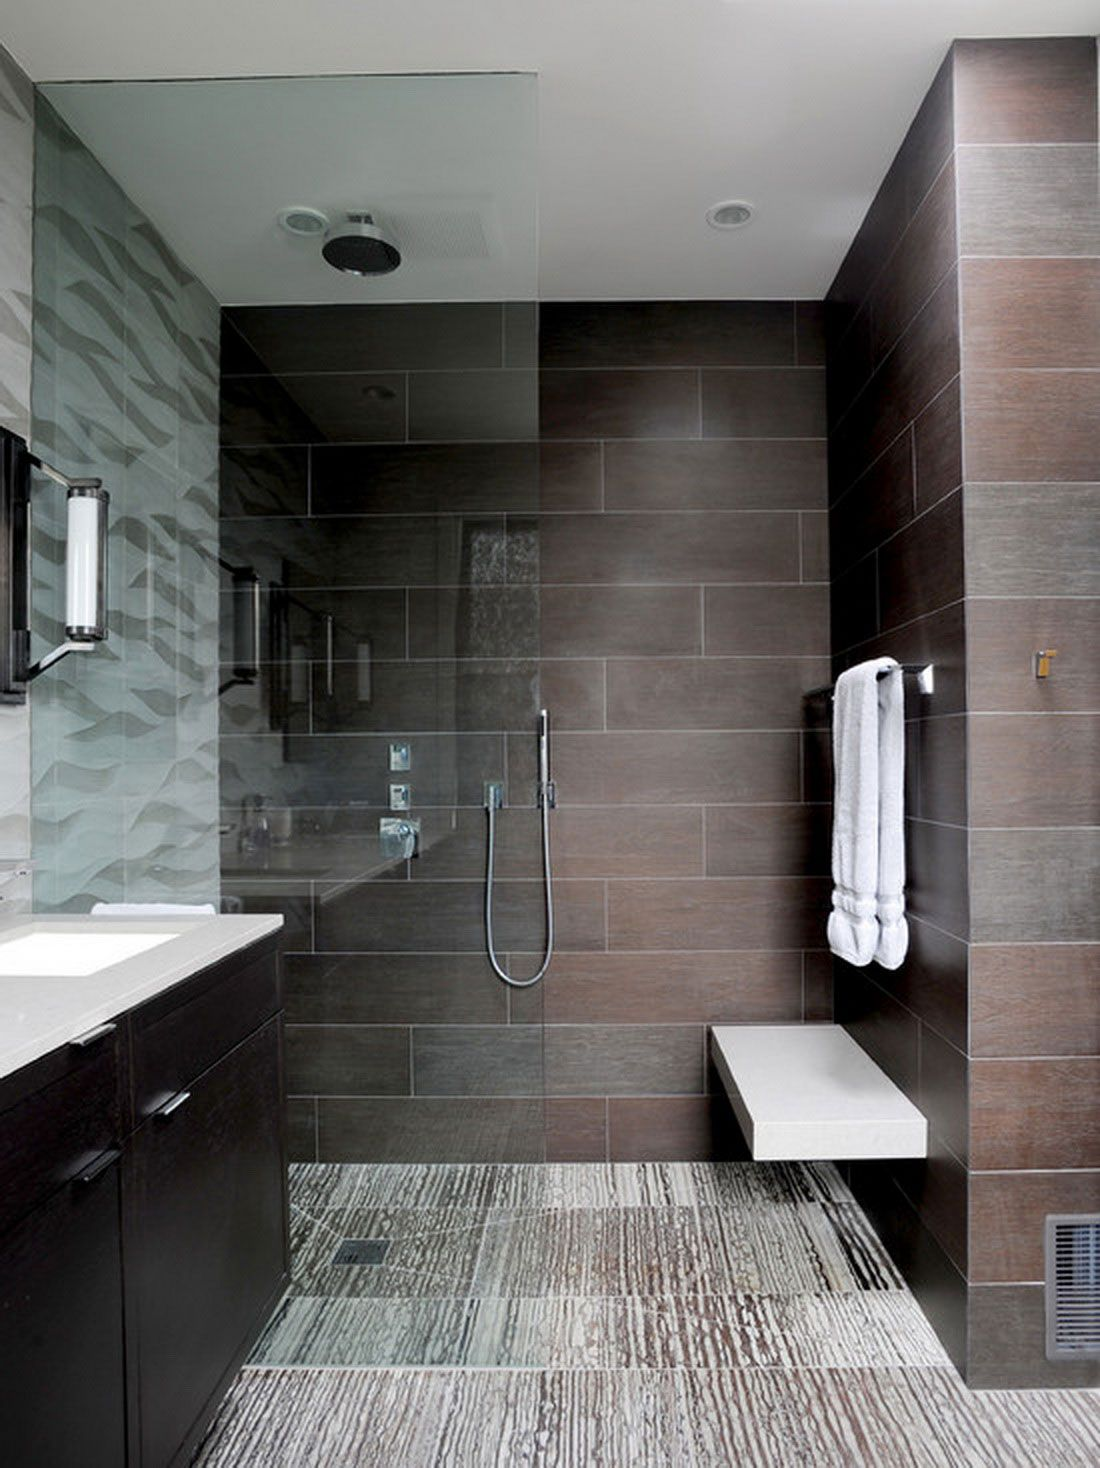 Glass Panel for Stylish Walk in Shower Ideas inside Cozy Bathroom with Black Vanity and White Sink